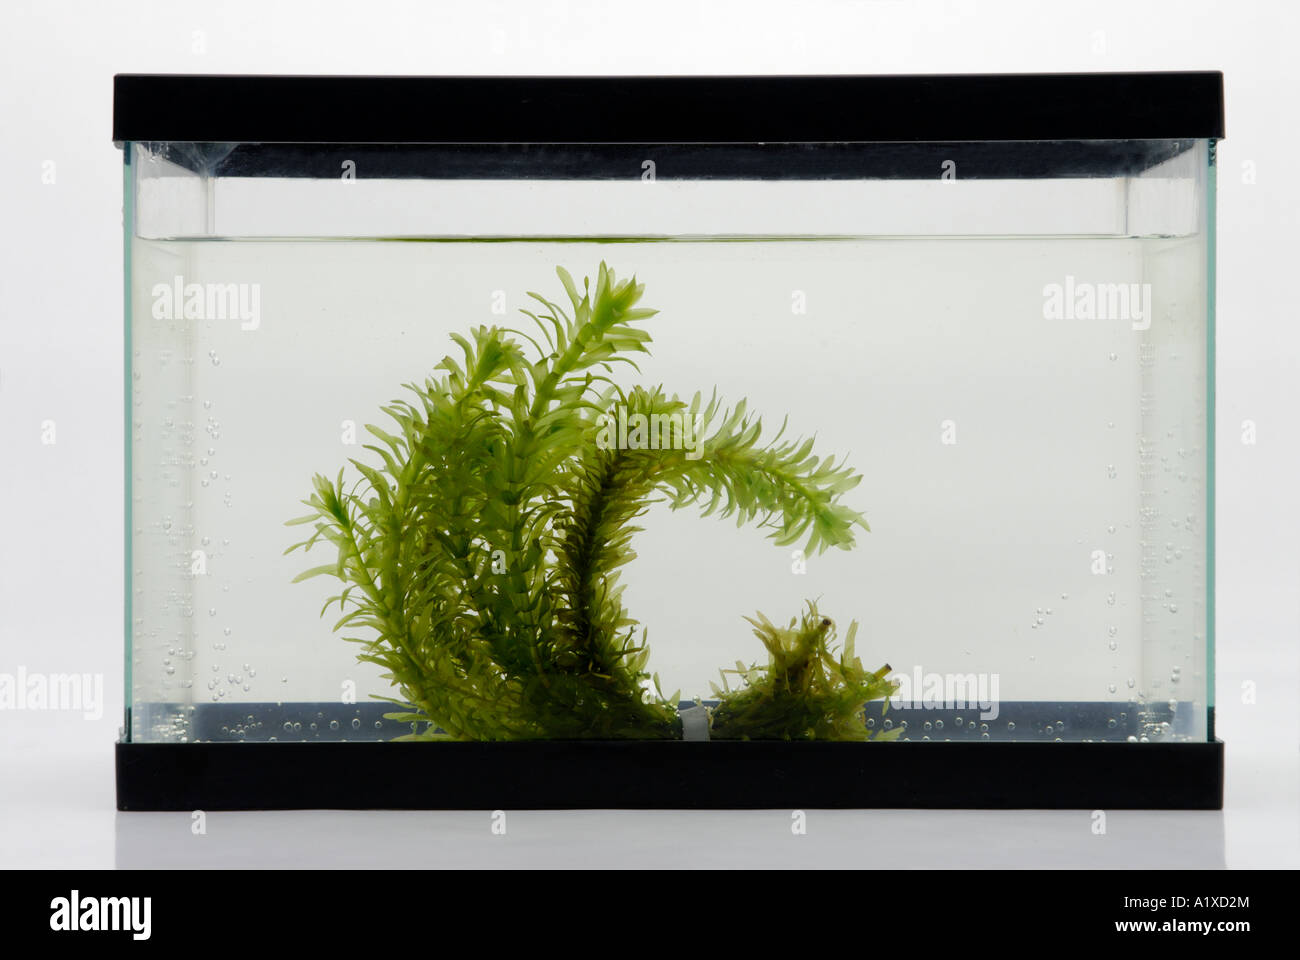 Aquatic plant in aquarium tank - Stock Image